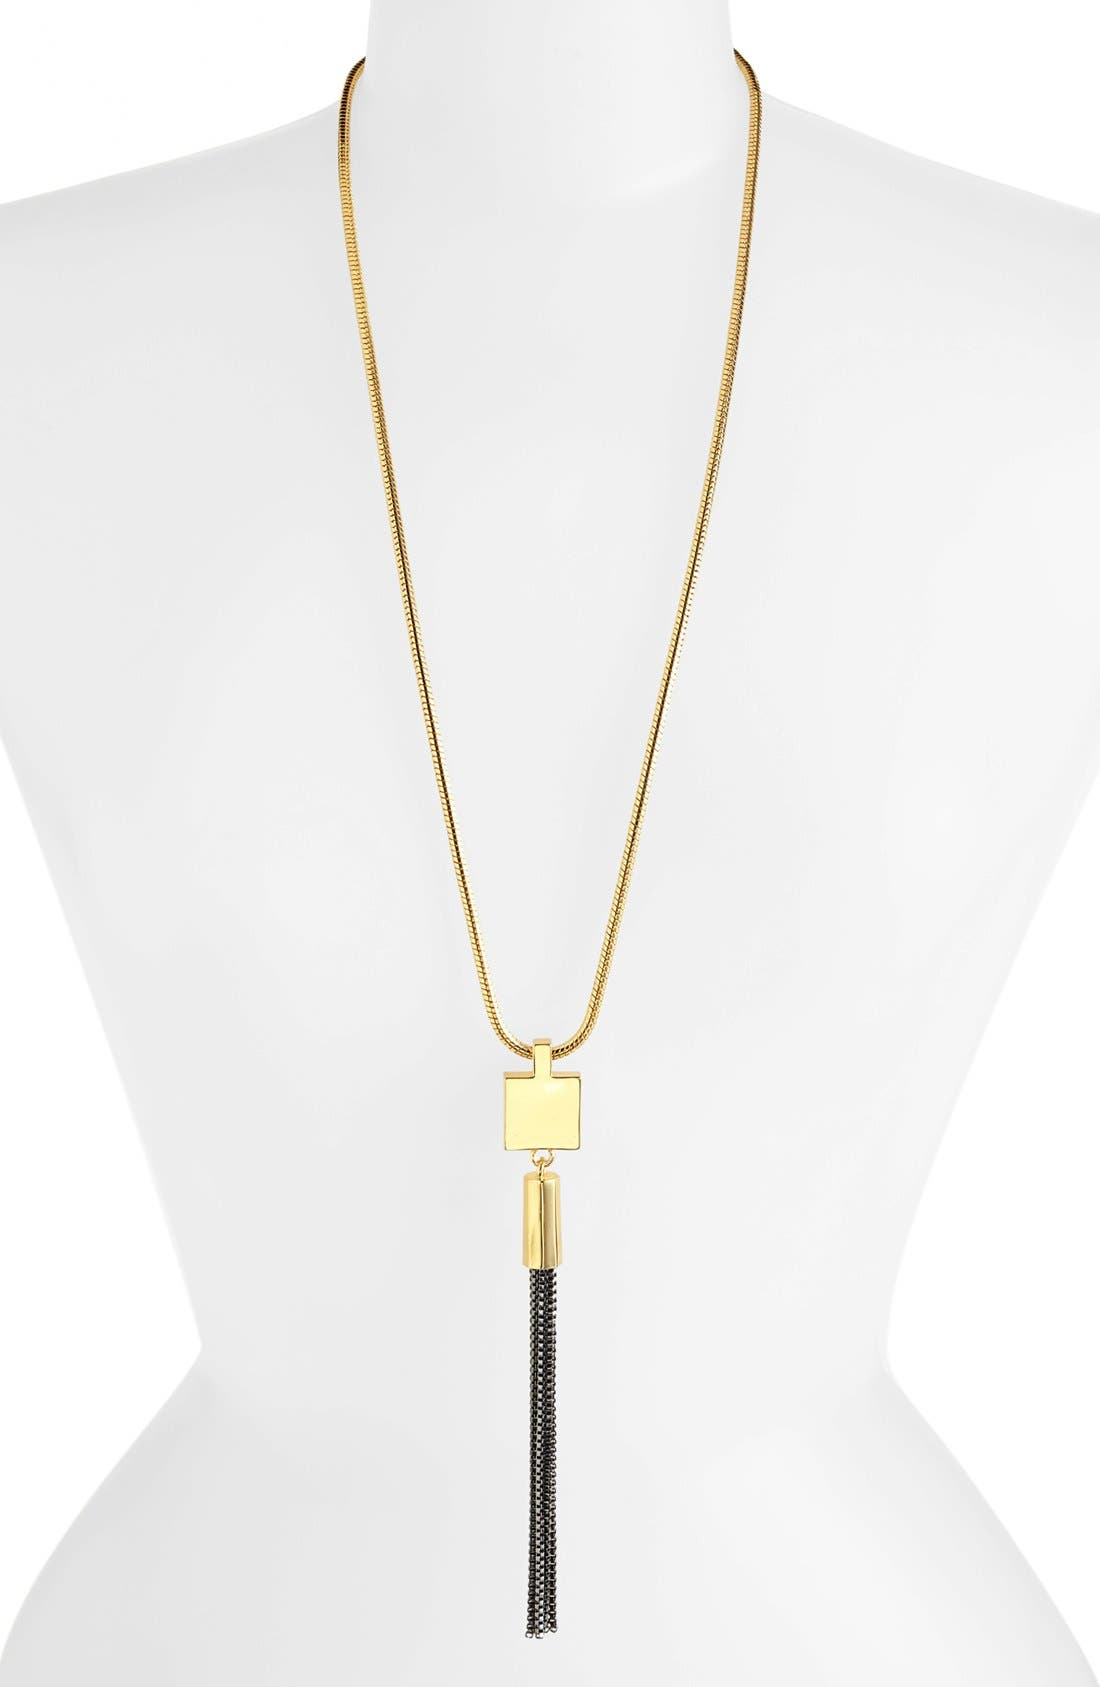 Main Image - Vince Camuto 'Tour of Duty' Tassel Necklace